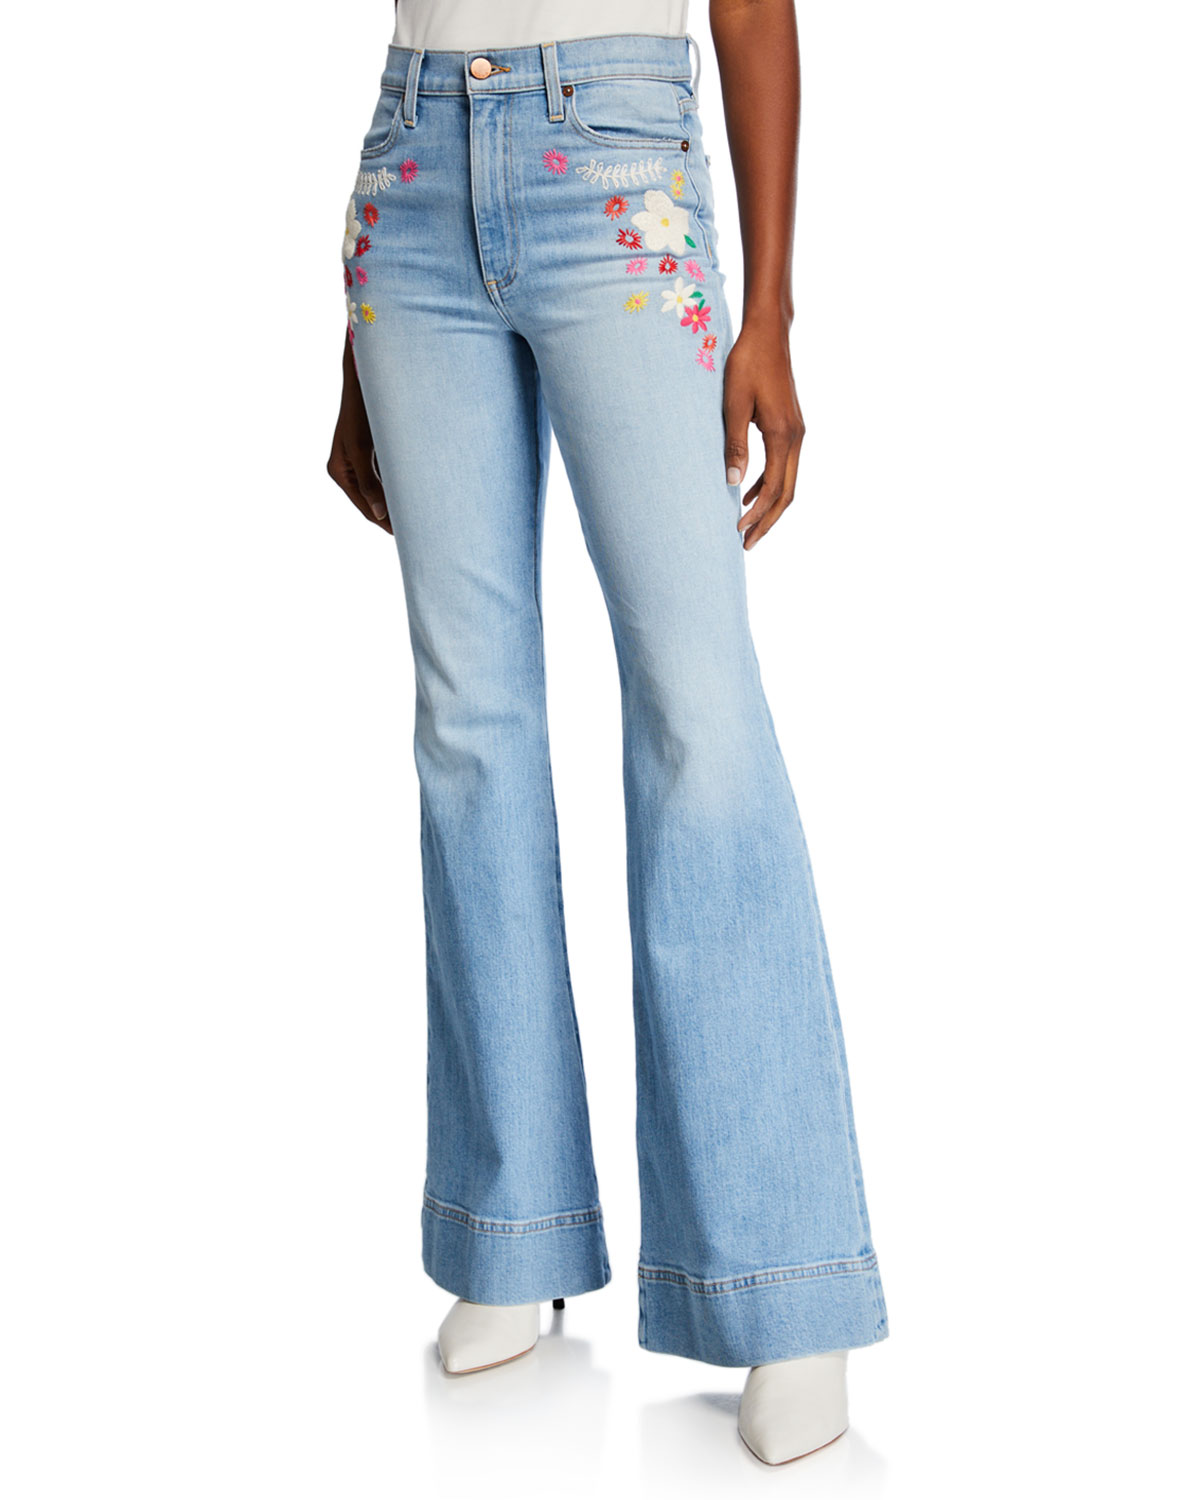 ALICE + OLIVIA JEANS Beautiful High-Rise Bell-Bottom Jeans in Tease Me